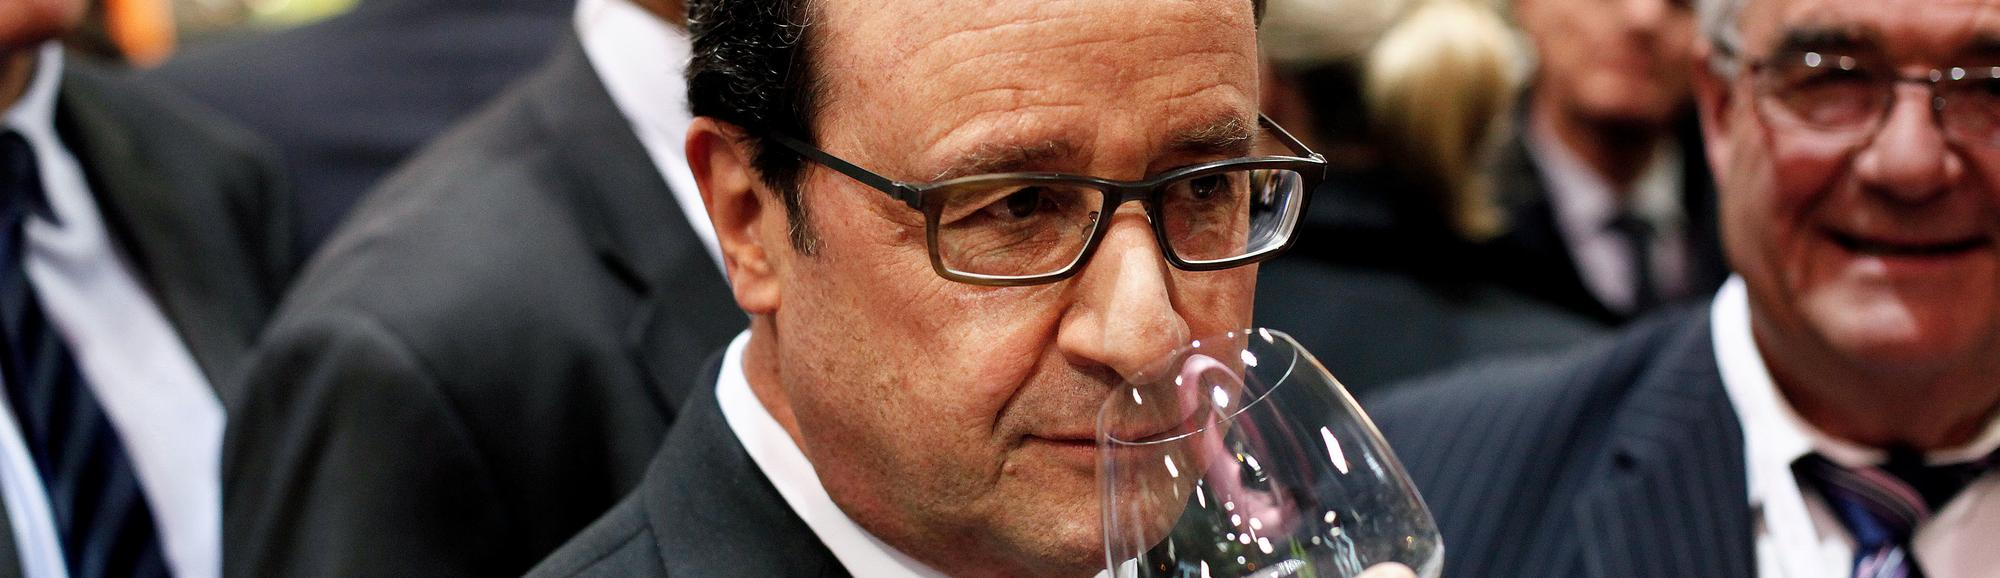 France Won't Dine With Iran Unless Wine Is Served